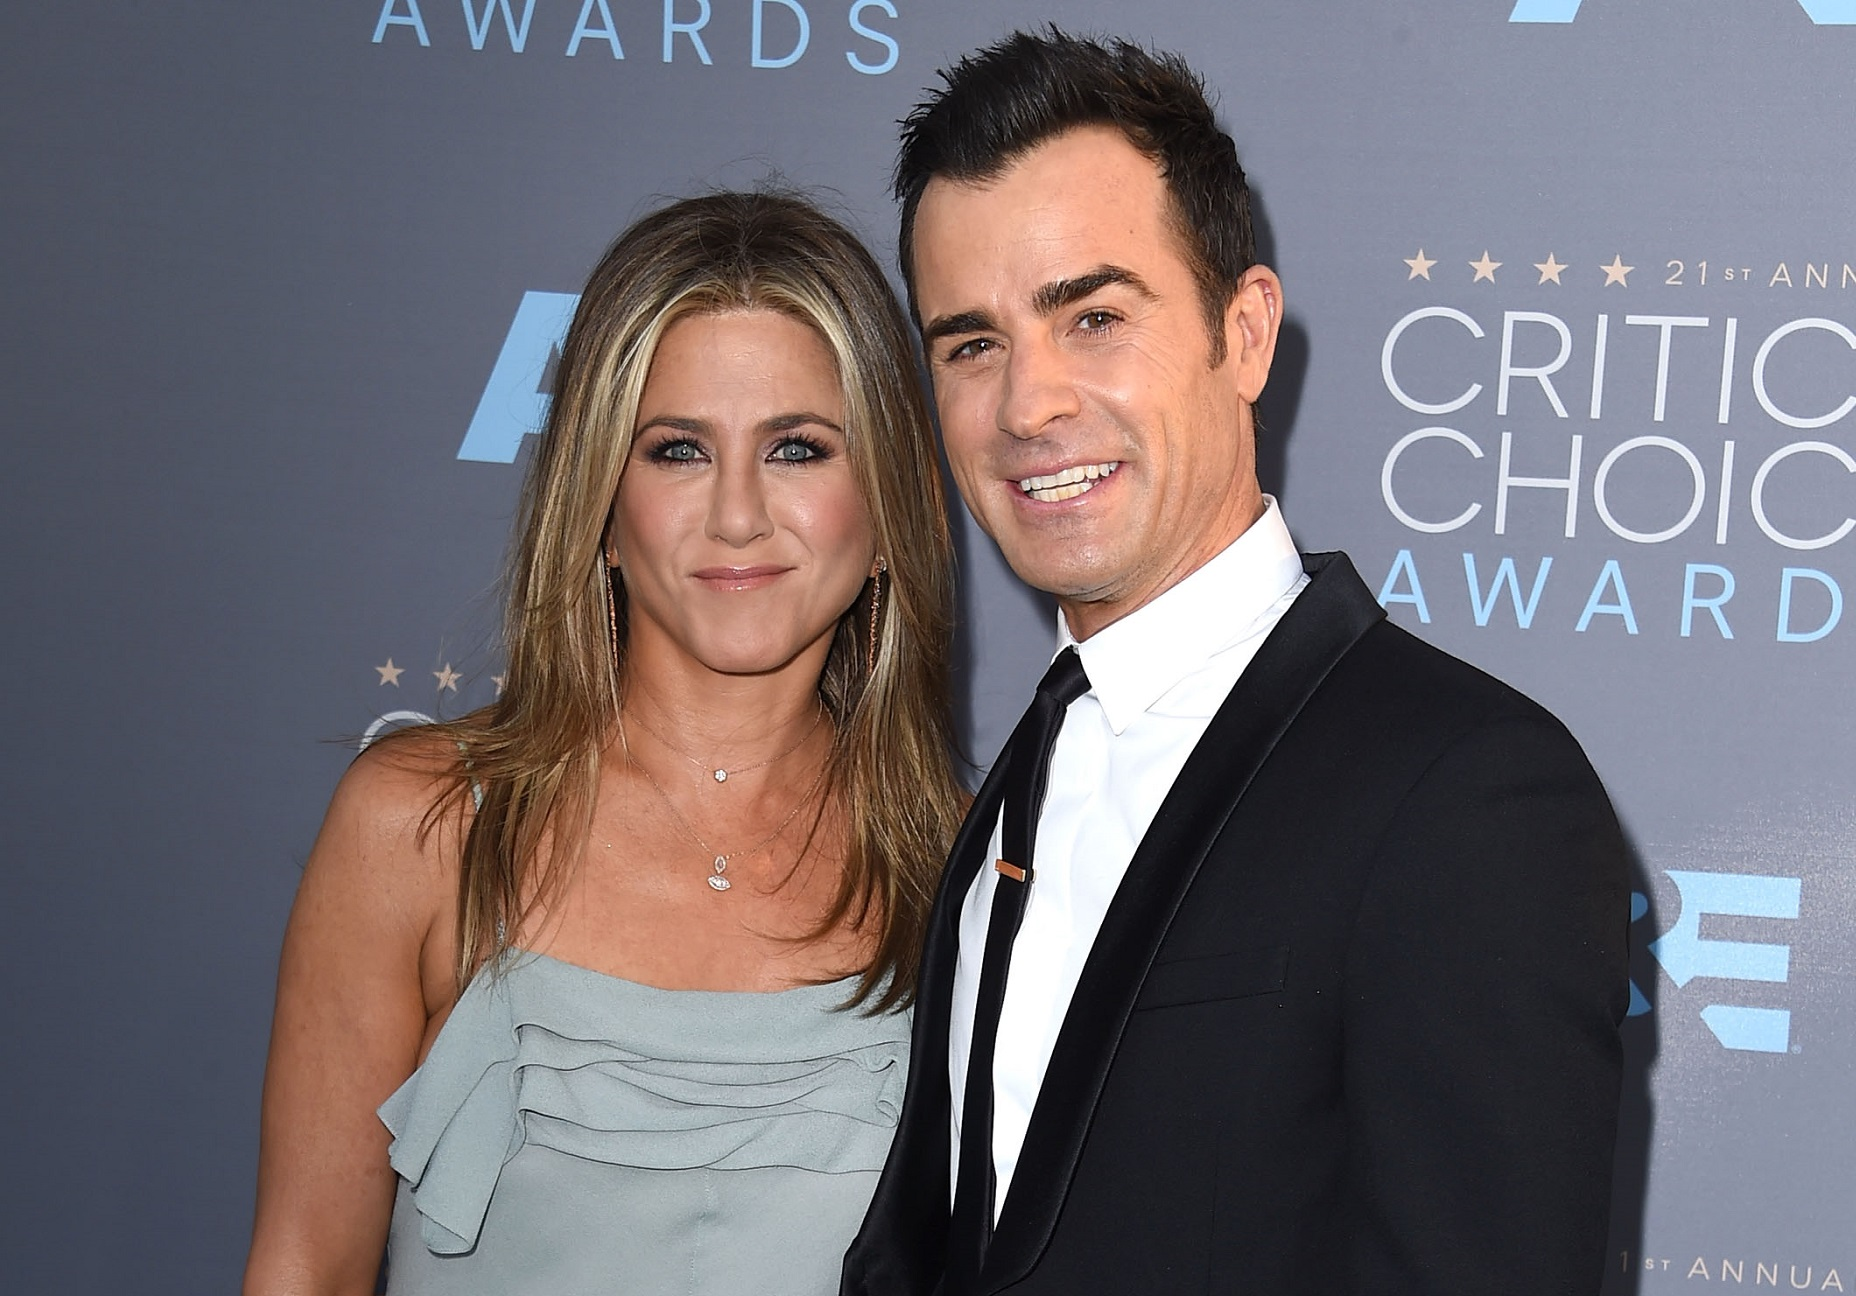 is Justin Theroux dating Jennifer Aniston Dating scan 5 dagen uit